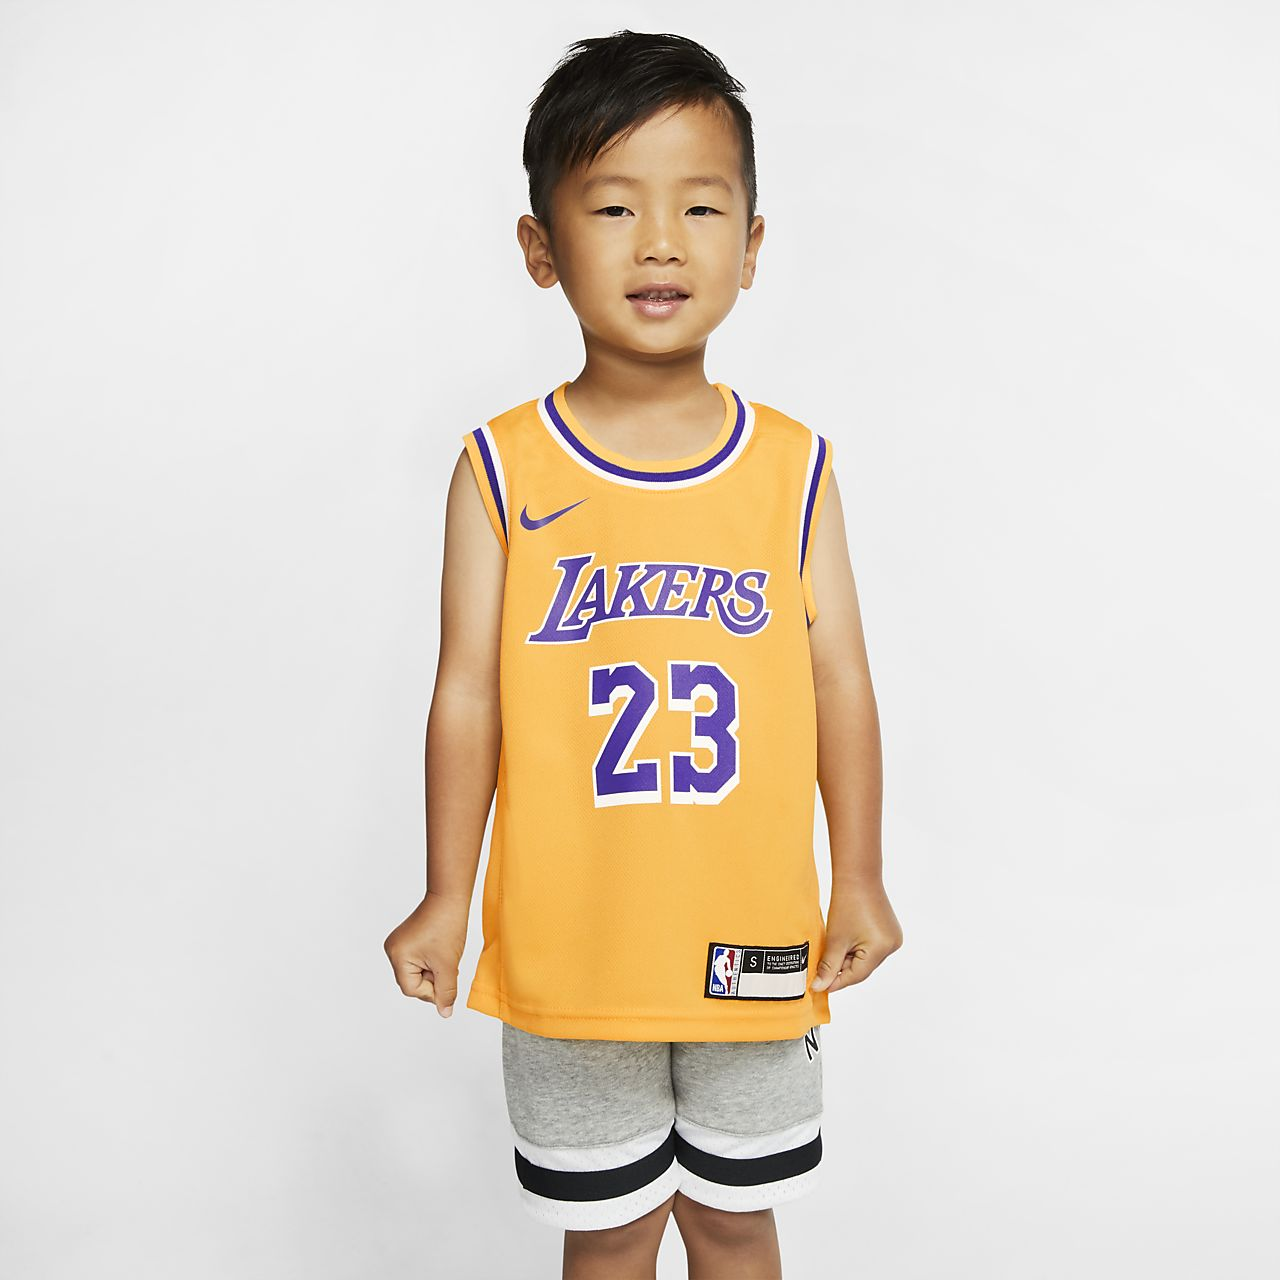 洛杉矶湖人队 Replica Icon Nike NBA Jersey 幼童球衣